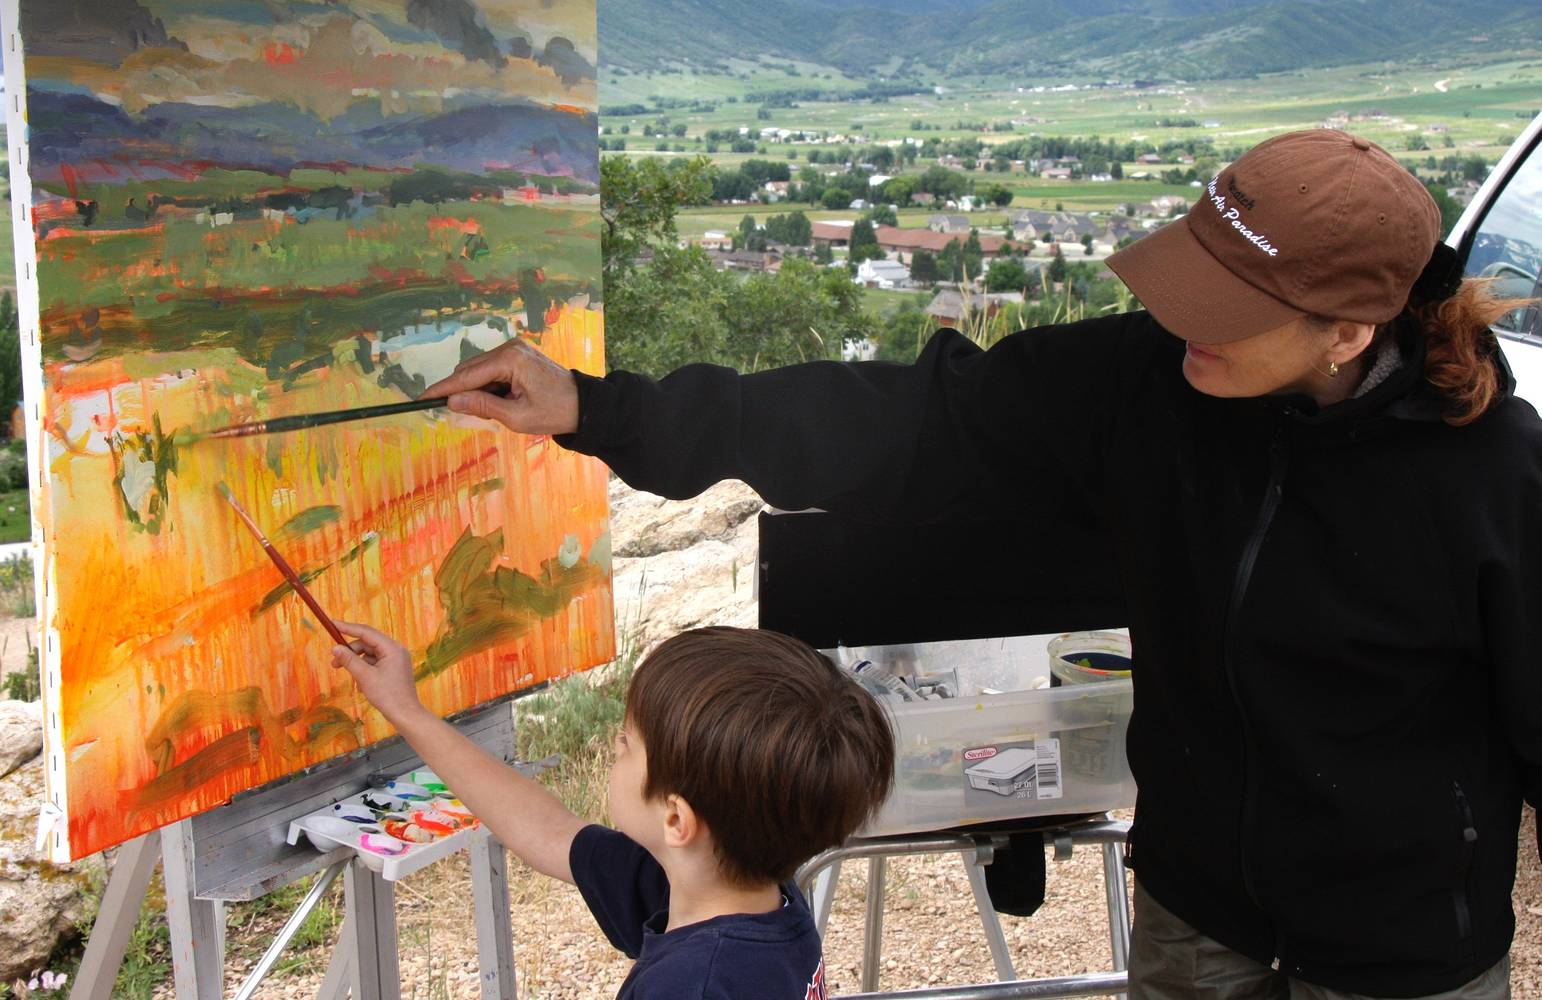 Painting with a little shiner, Memorial Hill, Midway by Susette Gertsch